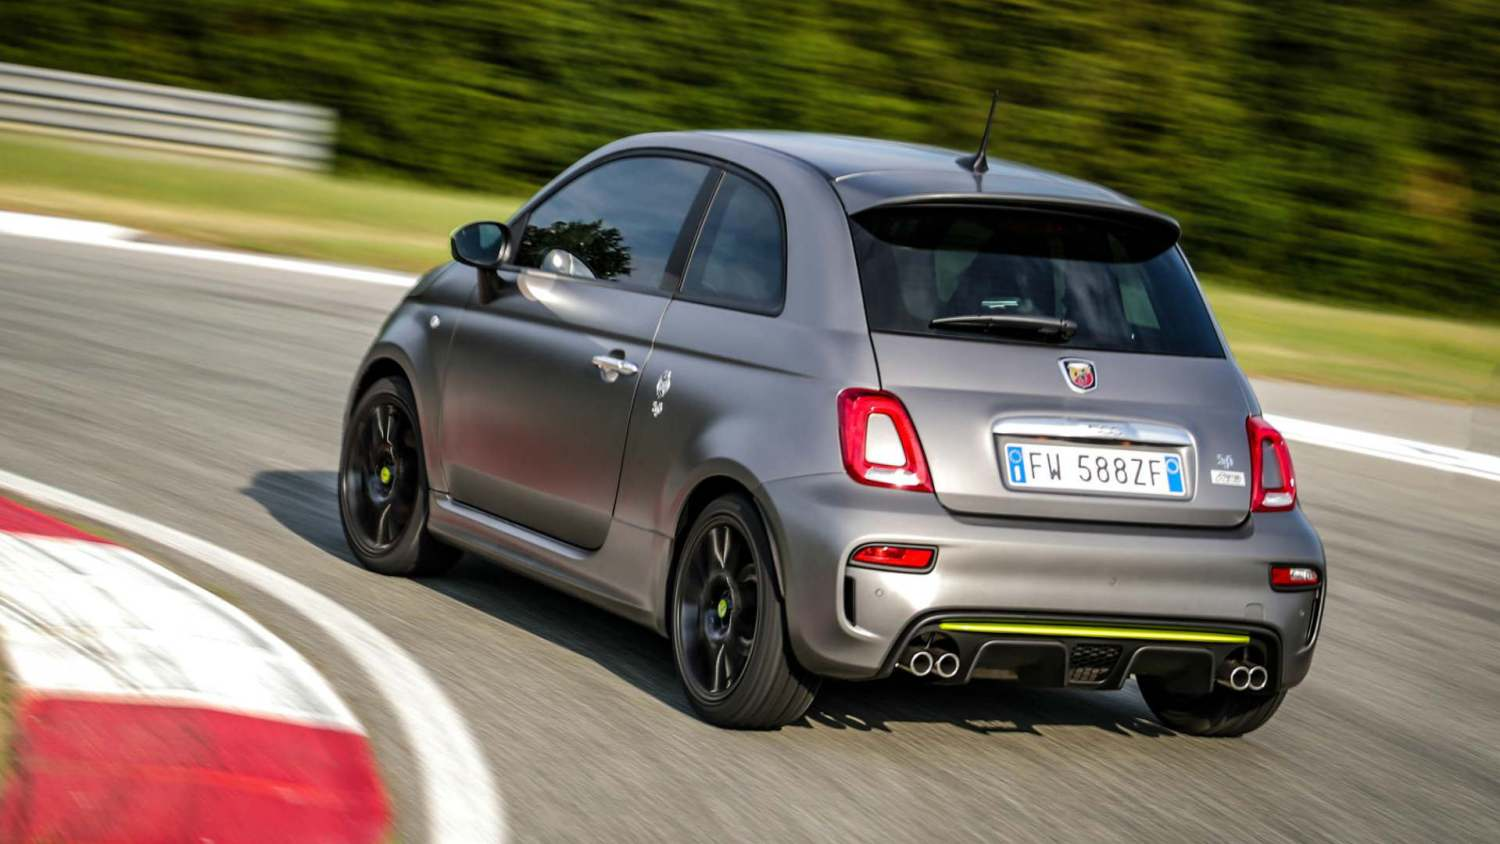 Abarth 595 Pista on track